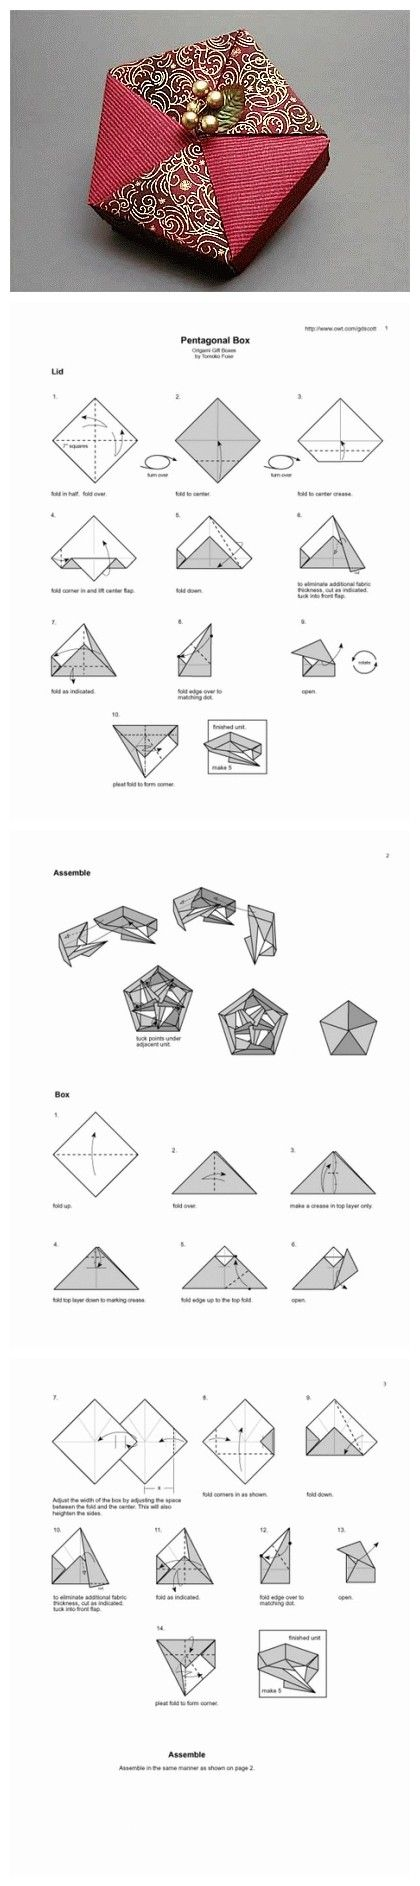 Origami pentagonal box (with instructions)